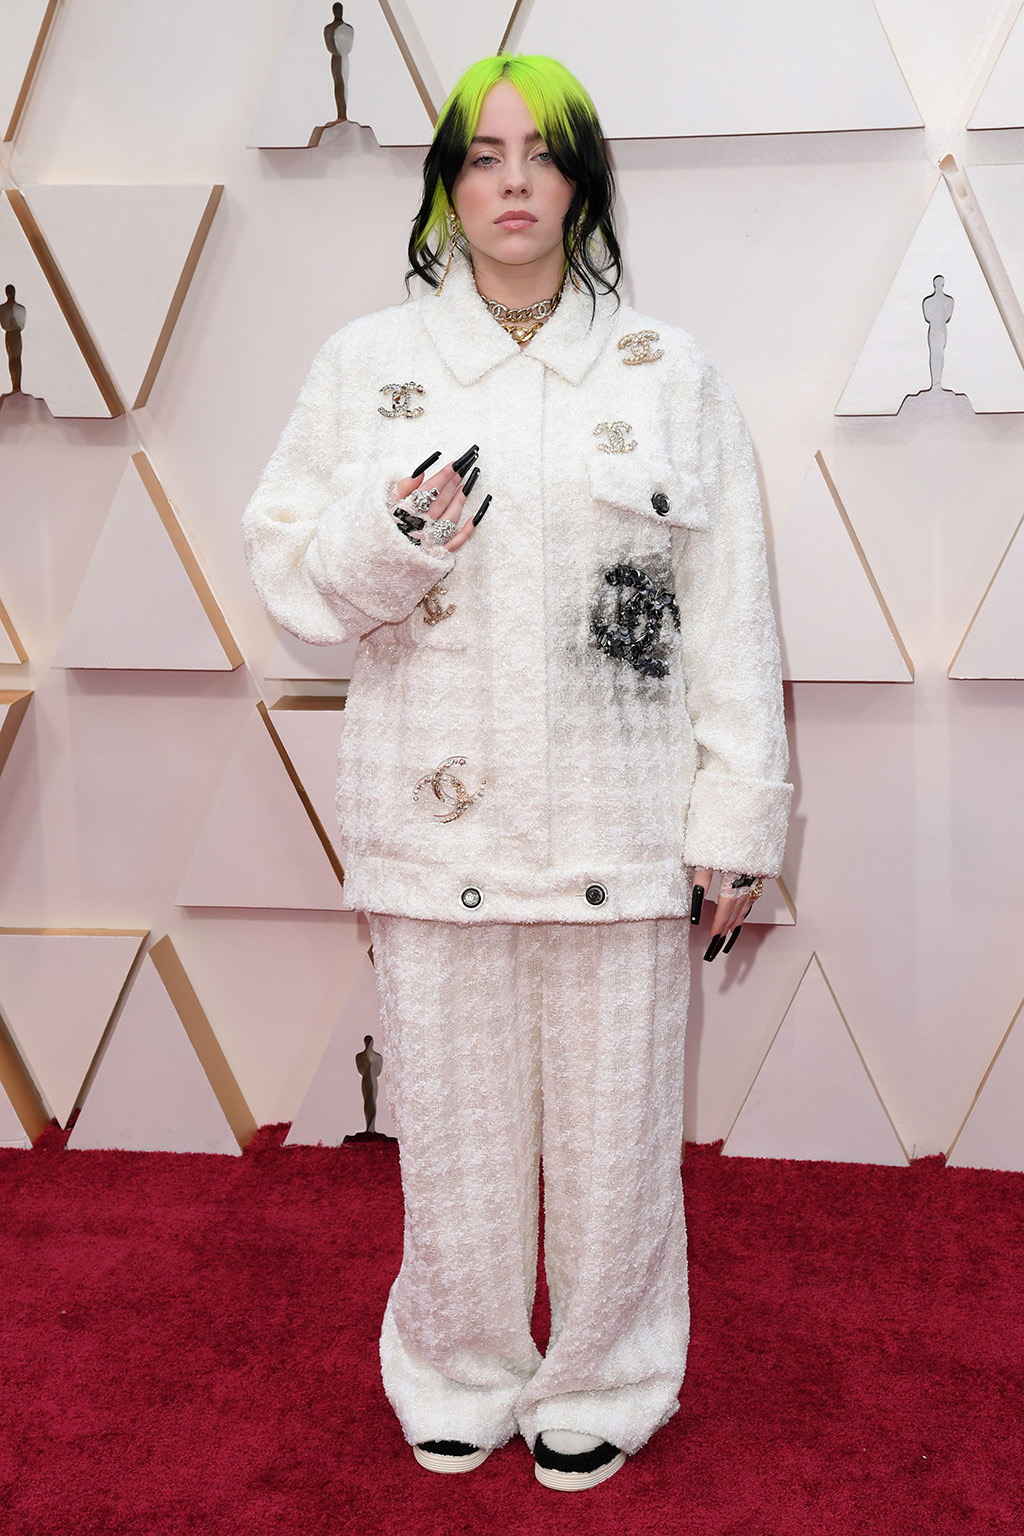 92nd Annual Academy Awards, Arrivals, Fashion Highlights, Los Angeles, Usa 09 Feb 2020